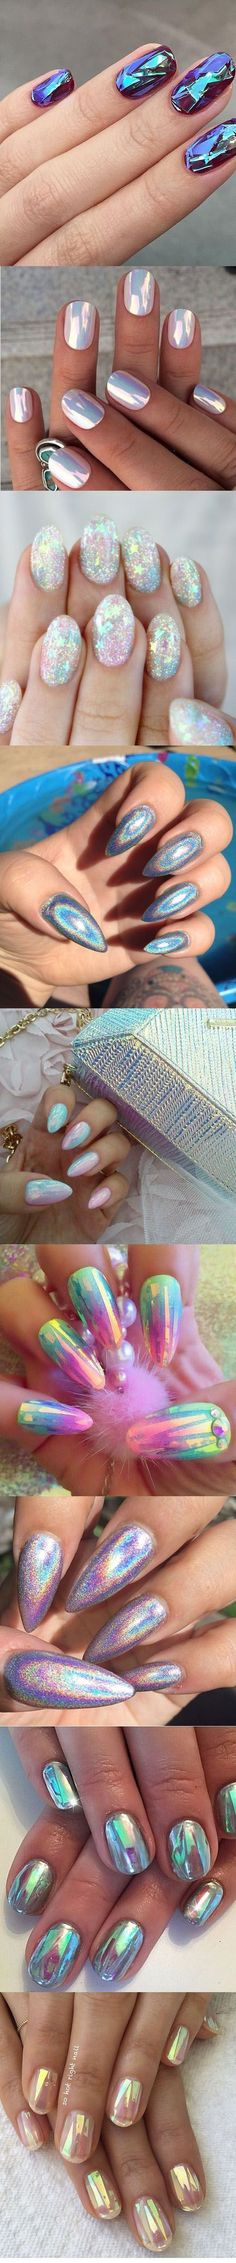 Ongles holographiques